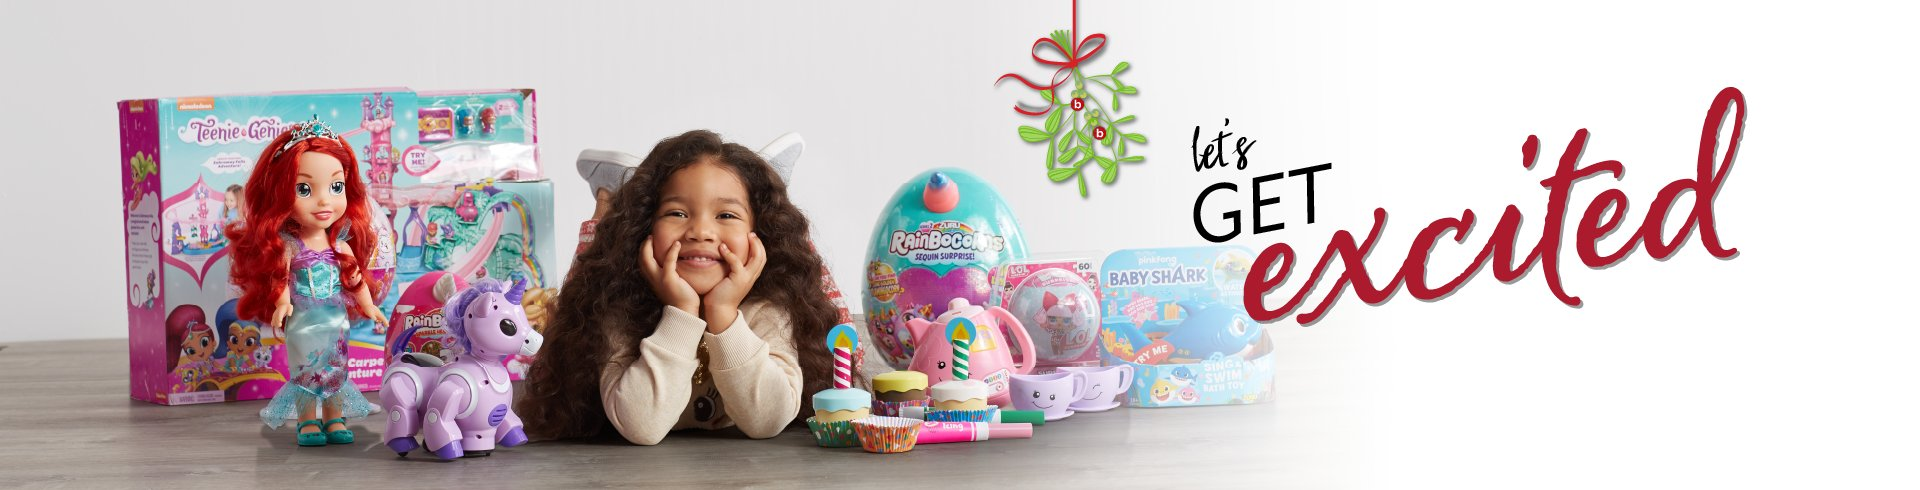 Gifts for Kids - Let's Get Gifting!